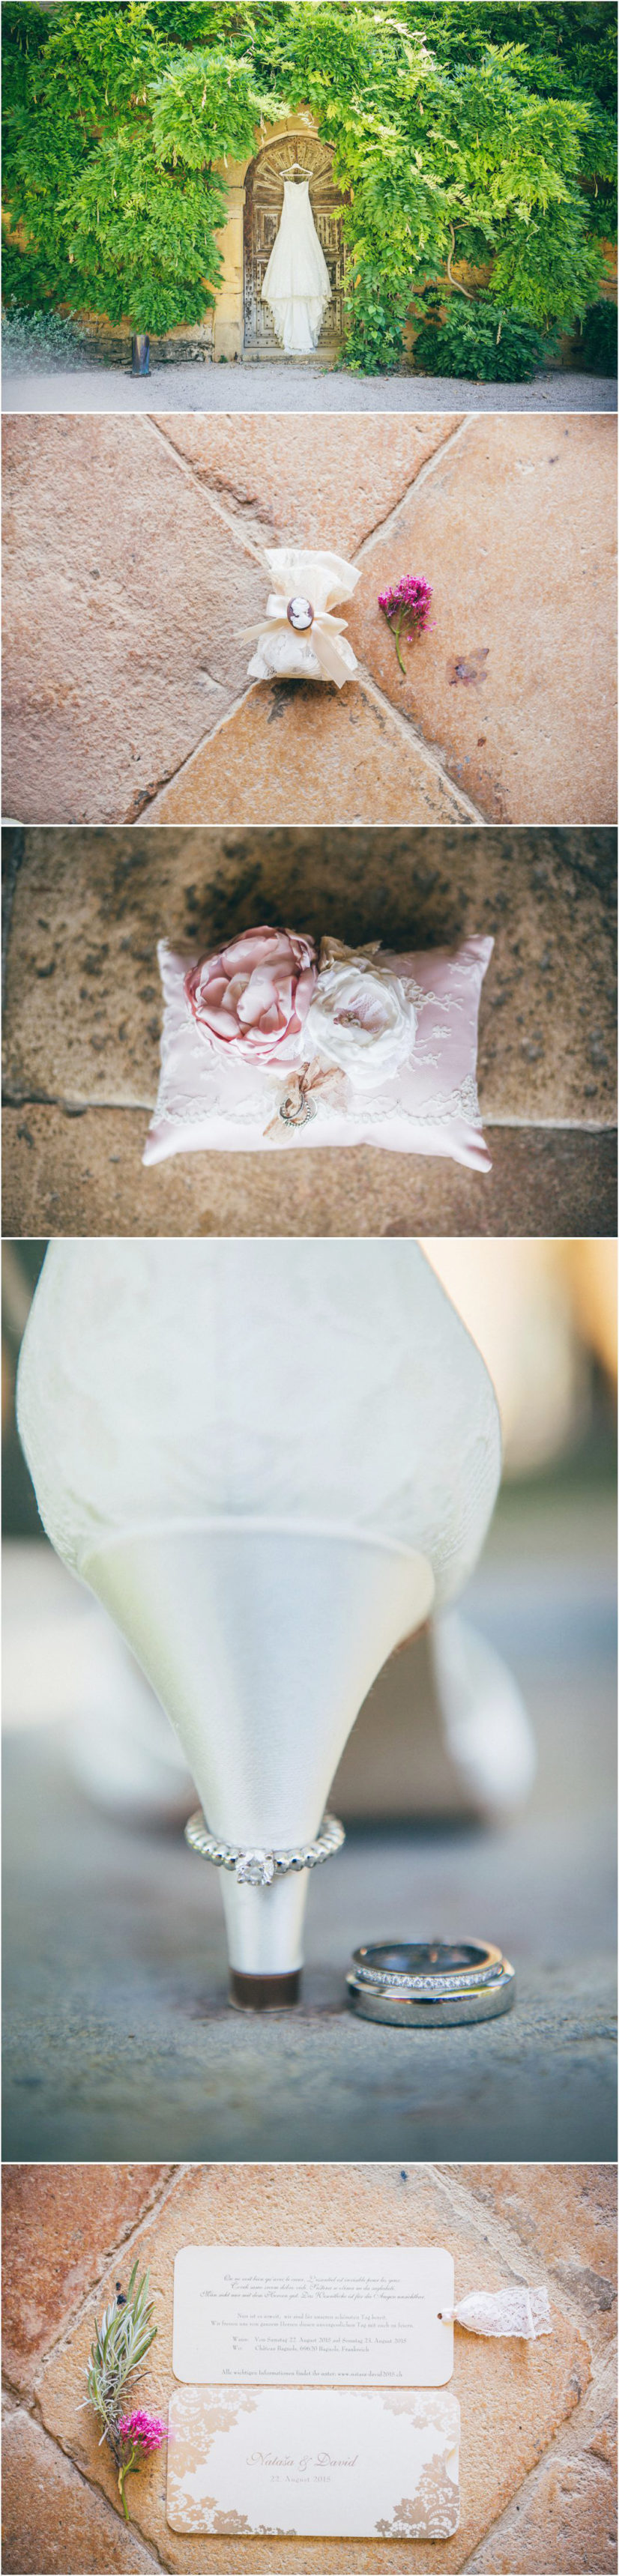 French wedding photographer bride's preparations chateau Bagnols France